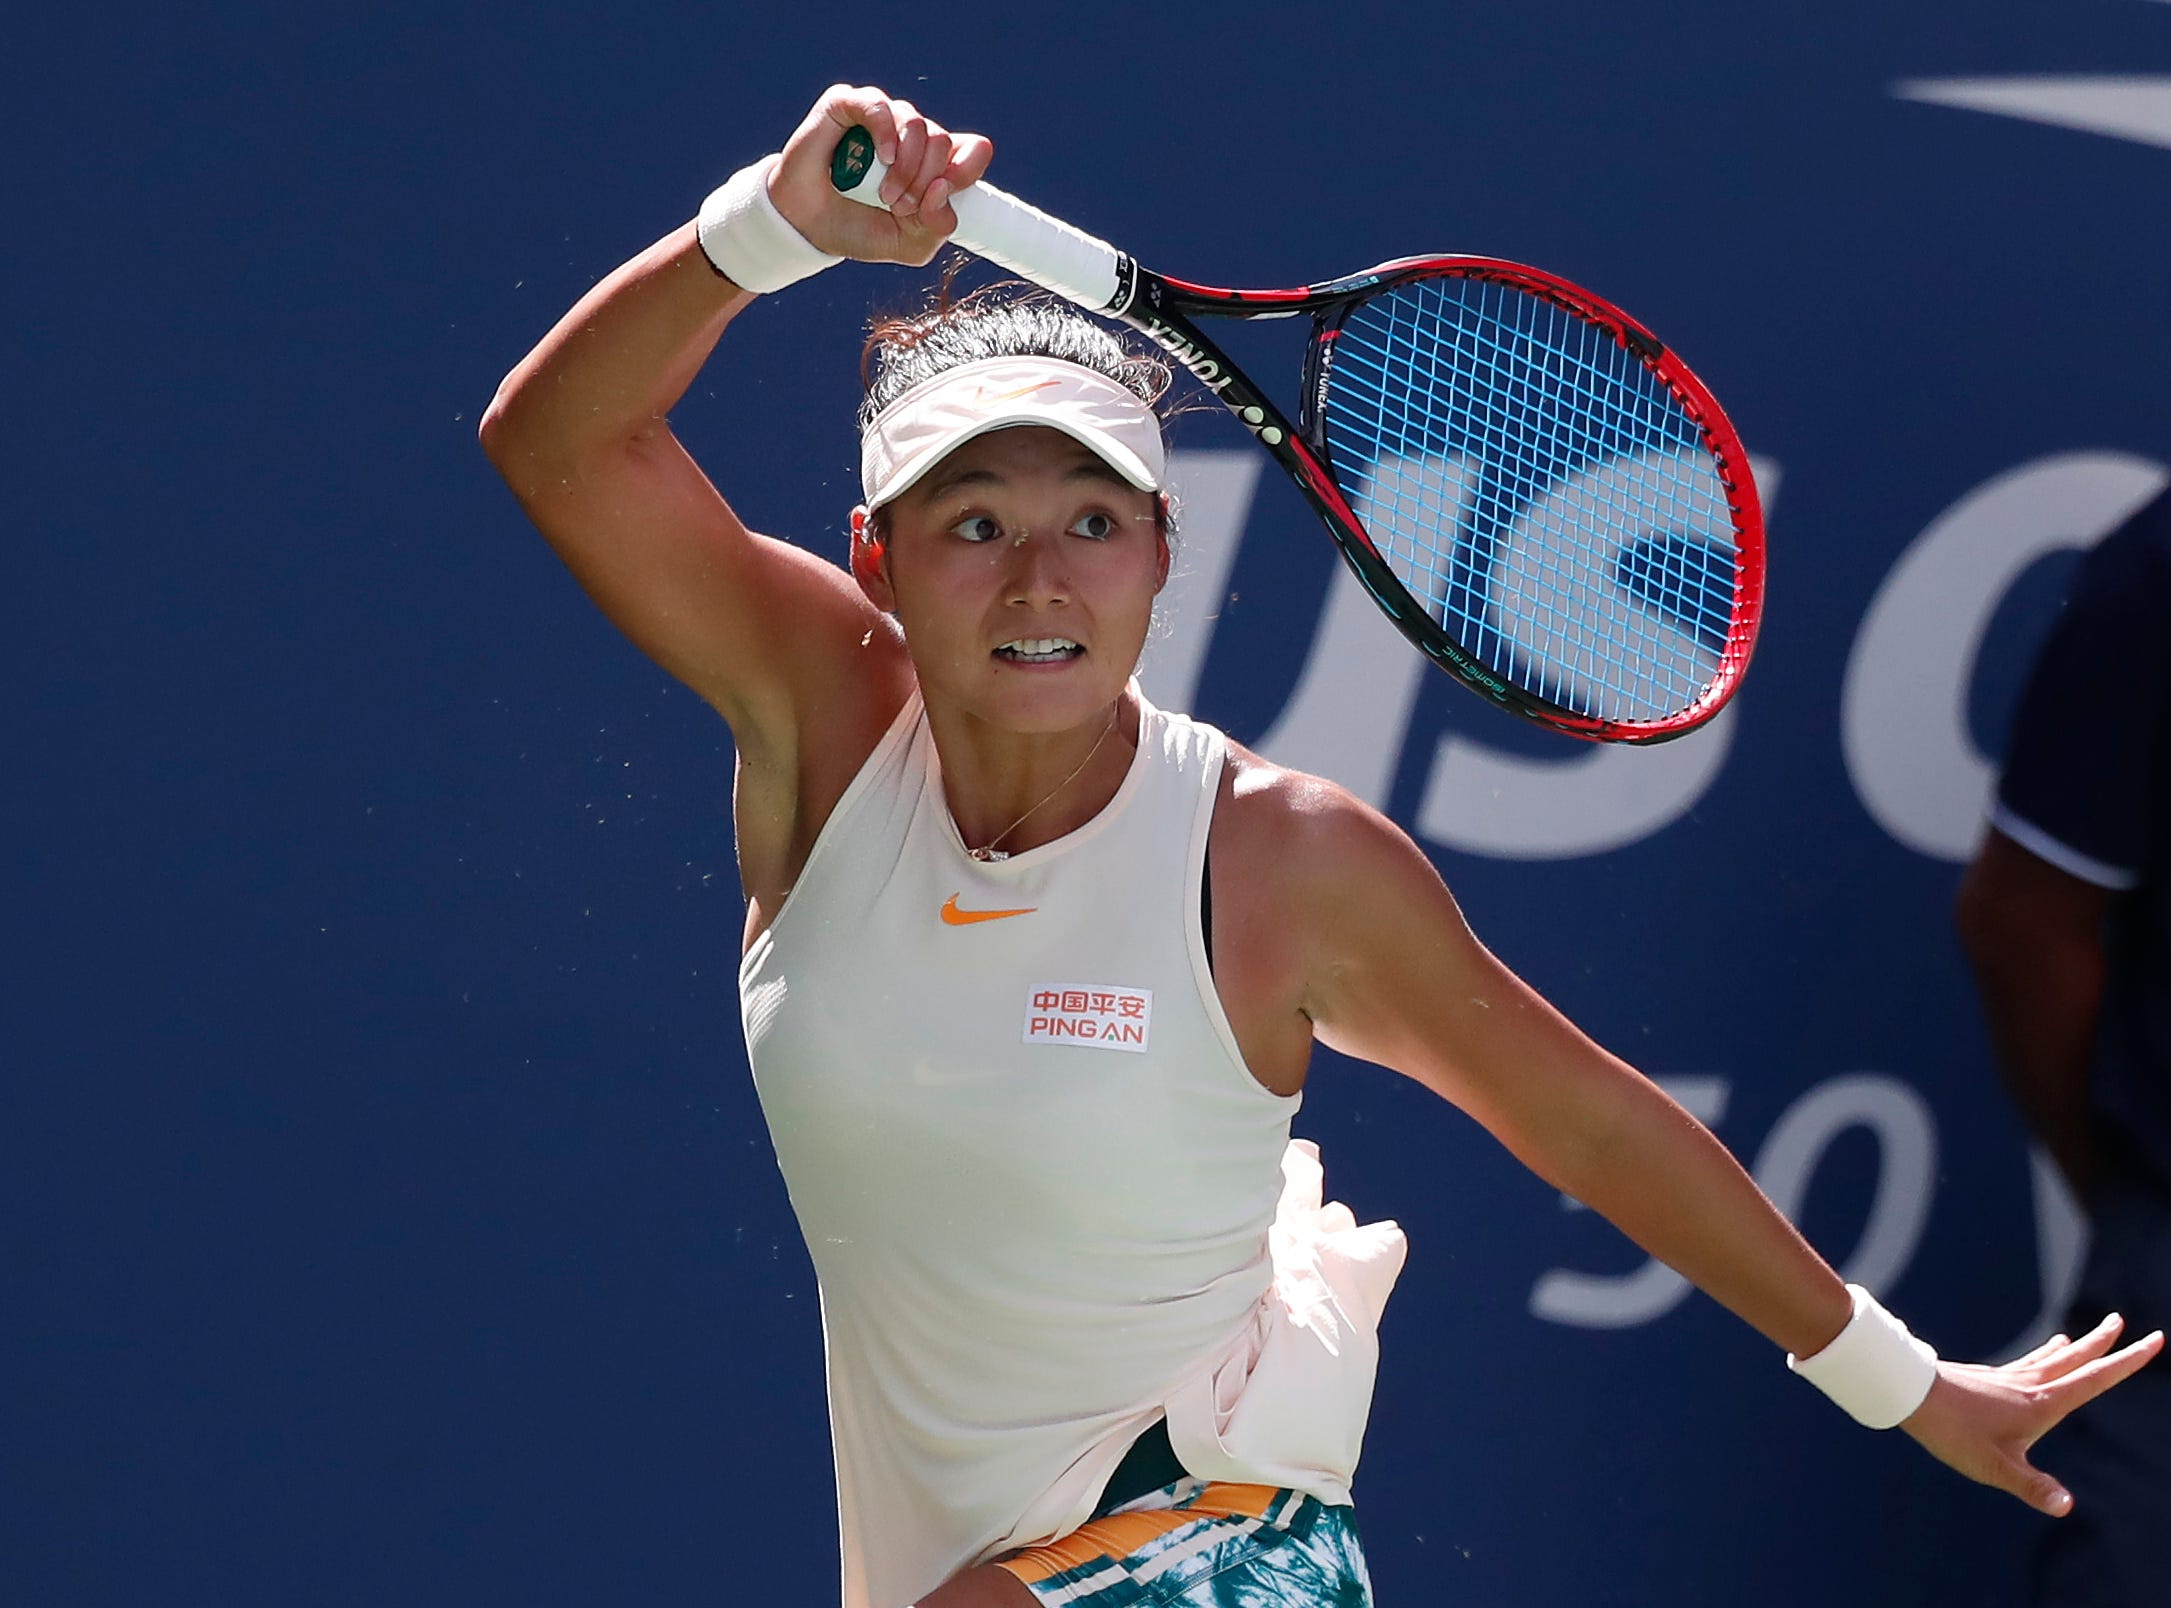 Yafan Wang of China hits a forehand against Petra Kvitova of Czech Republic.